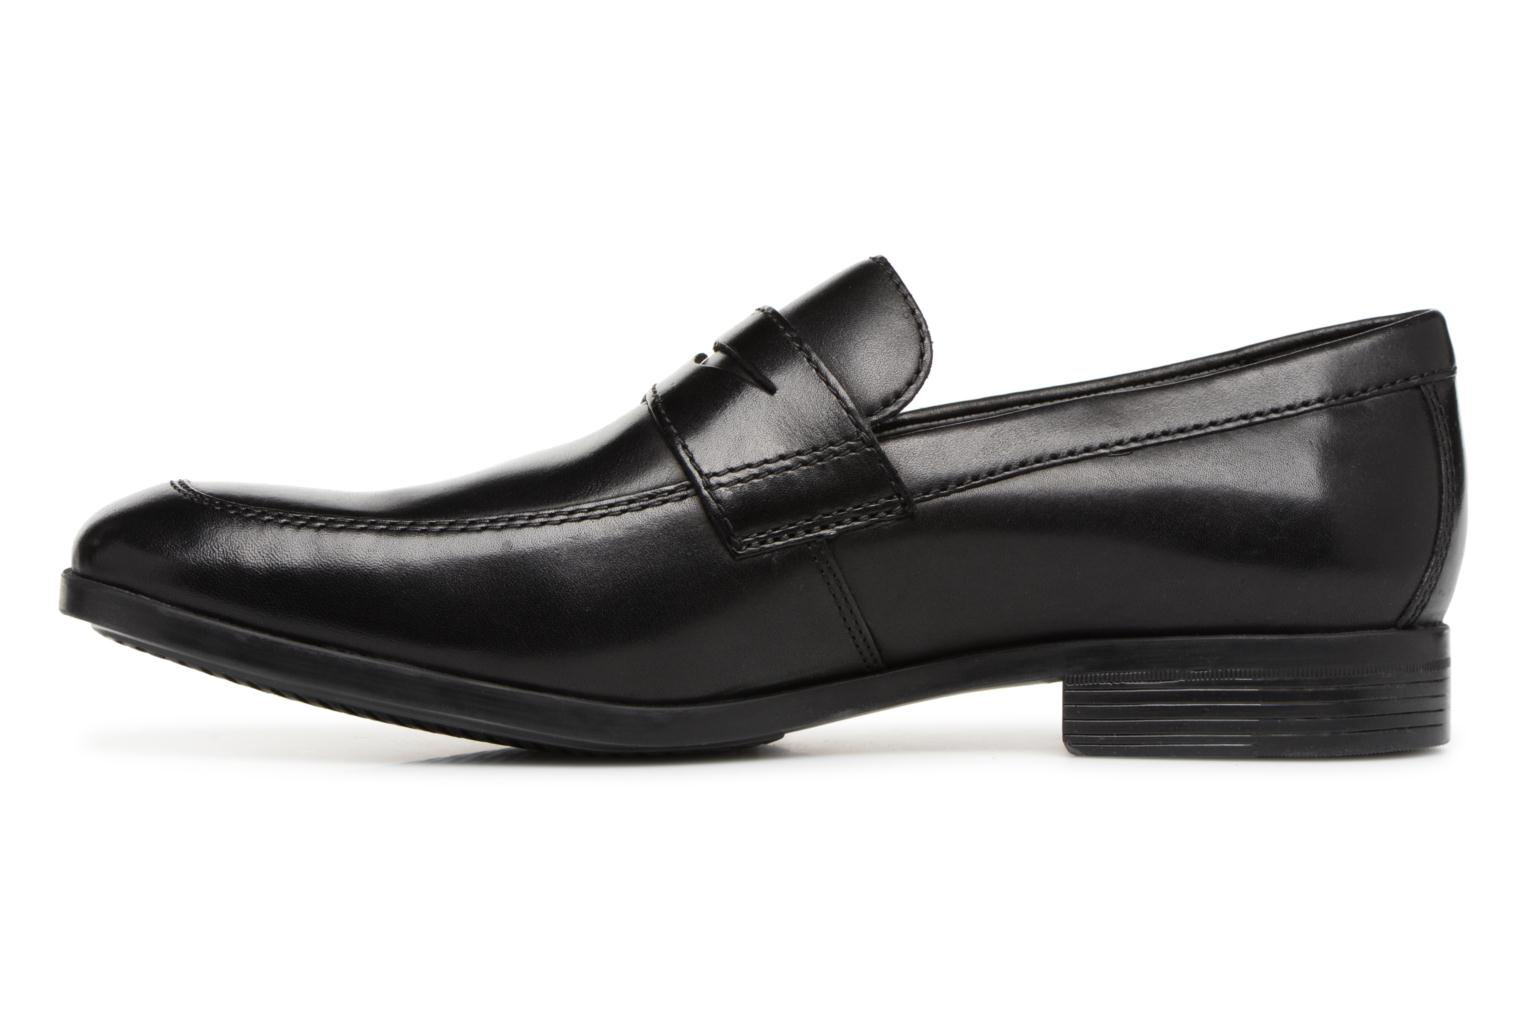 Black Leather Way Way Conwell Clarks Conwell Black Clarks CxerdBoW